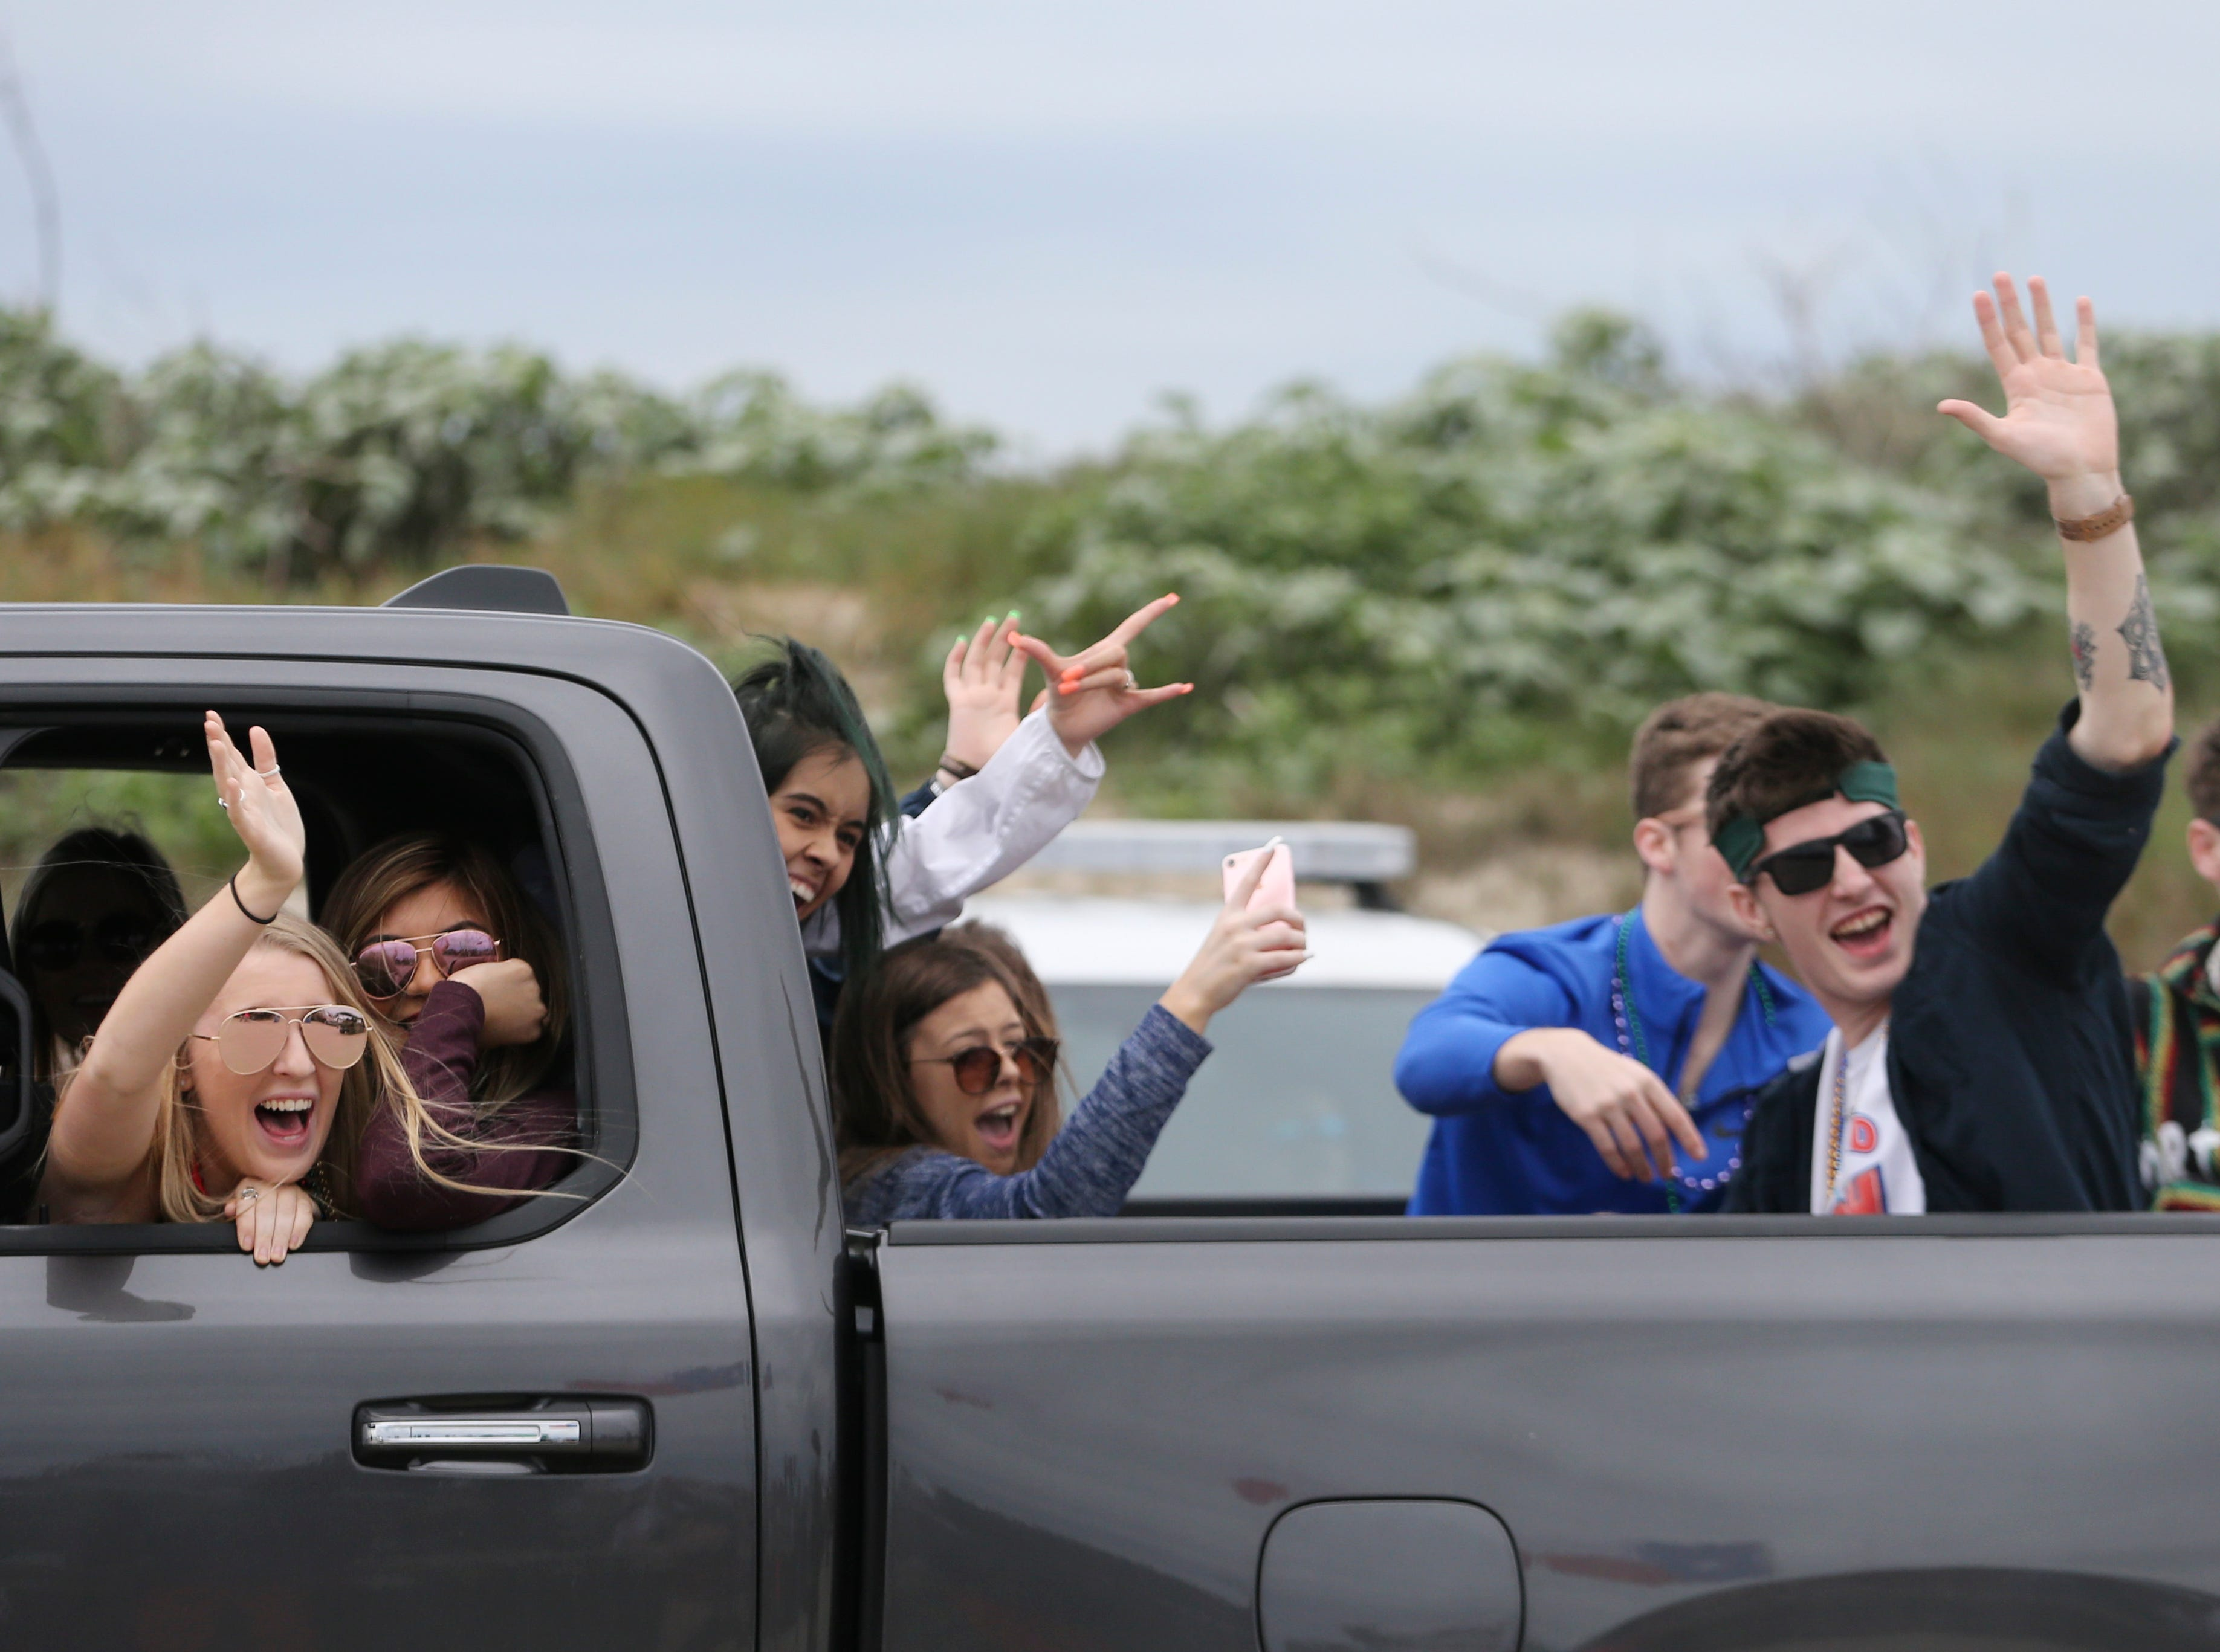 Images from day five of spring break, Friday, March 15, 2019.